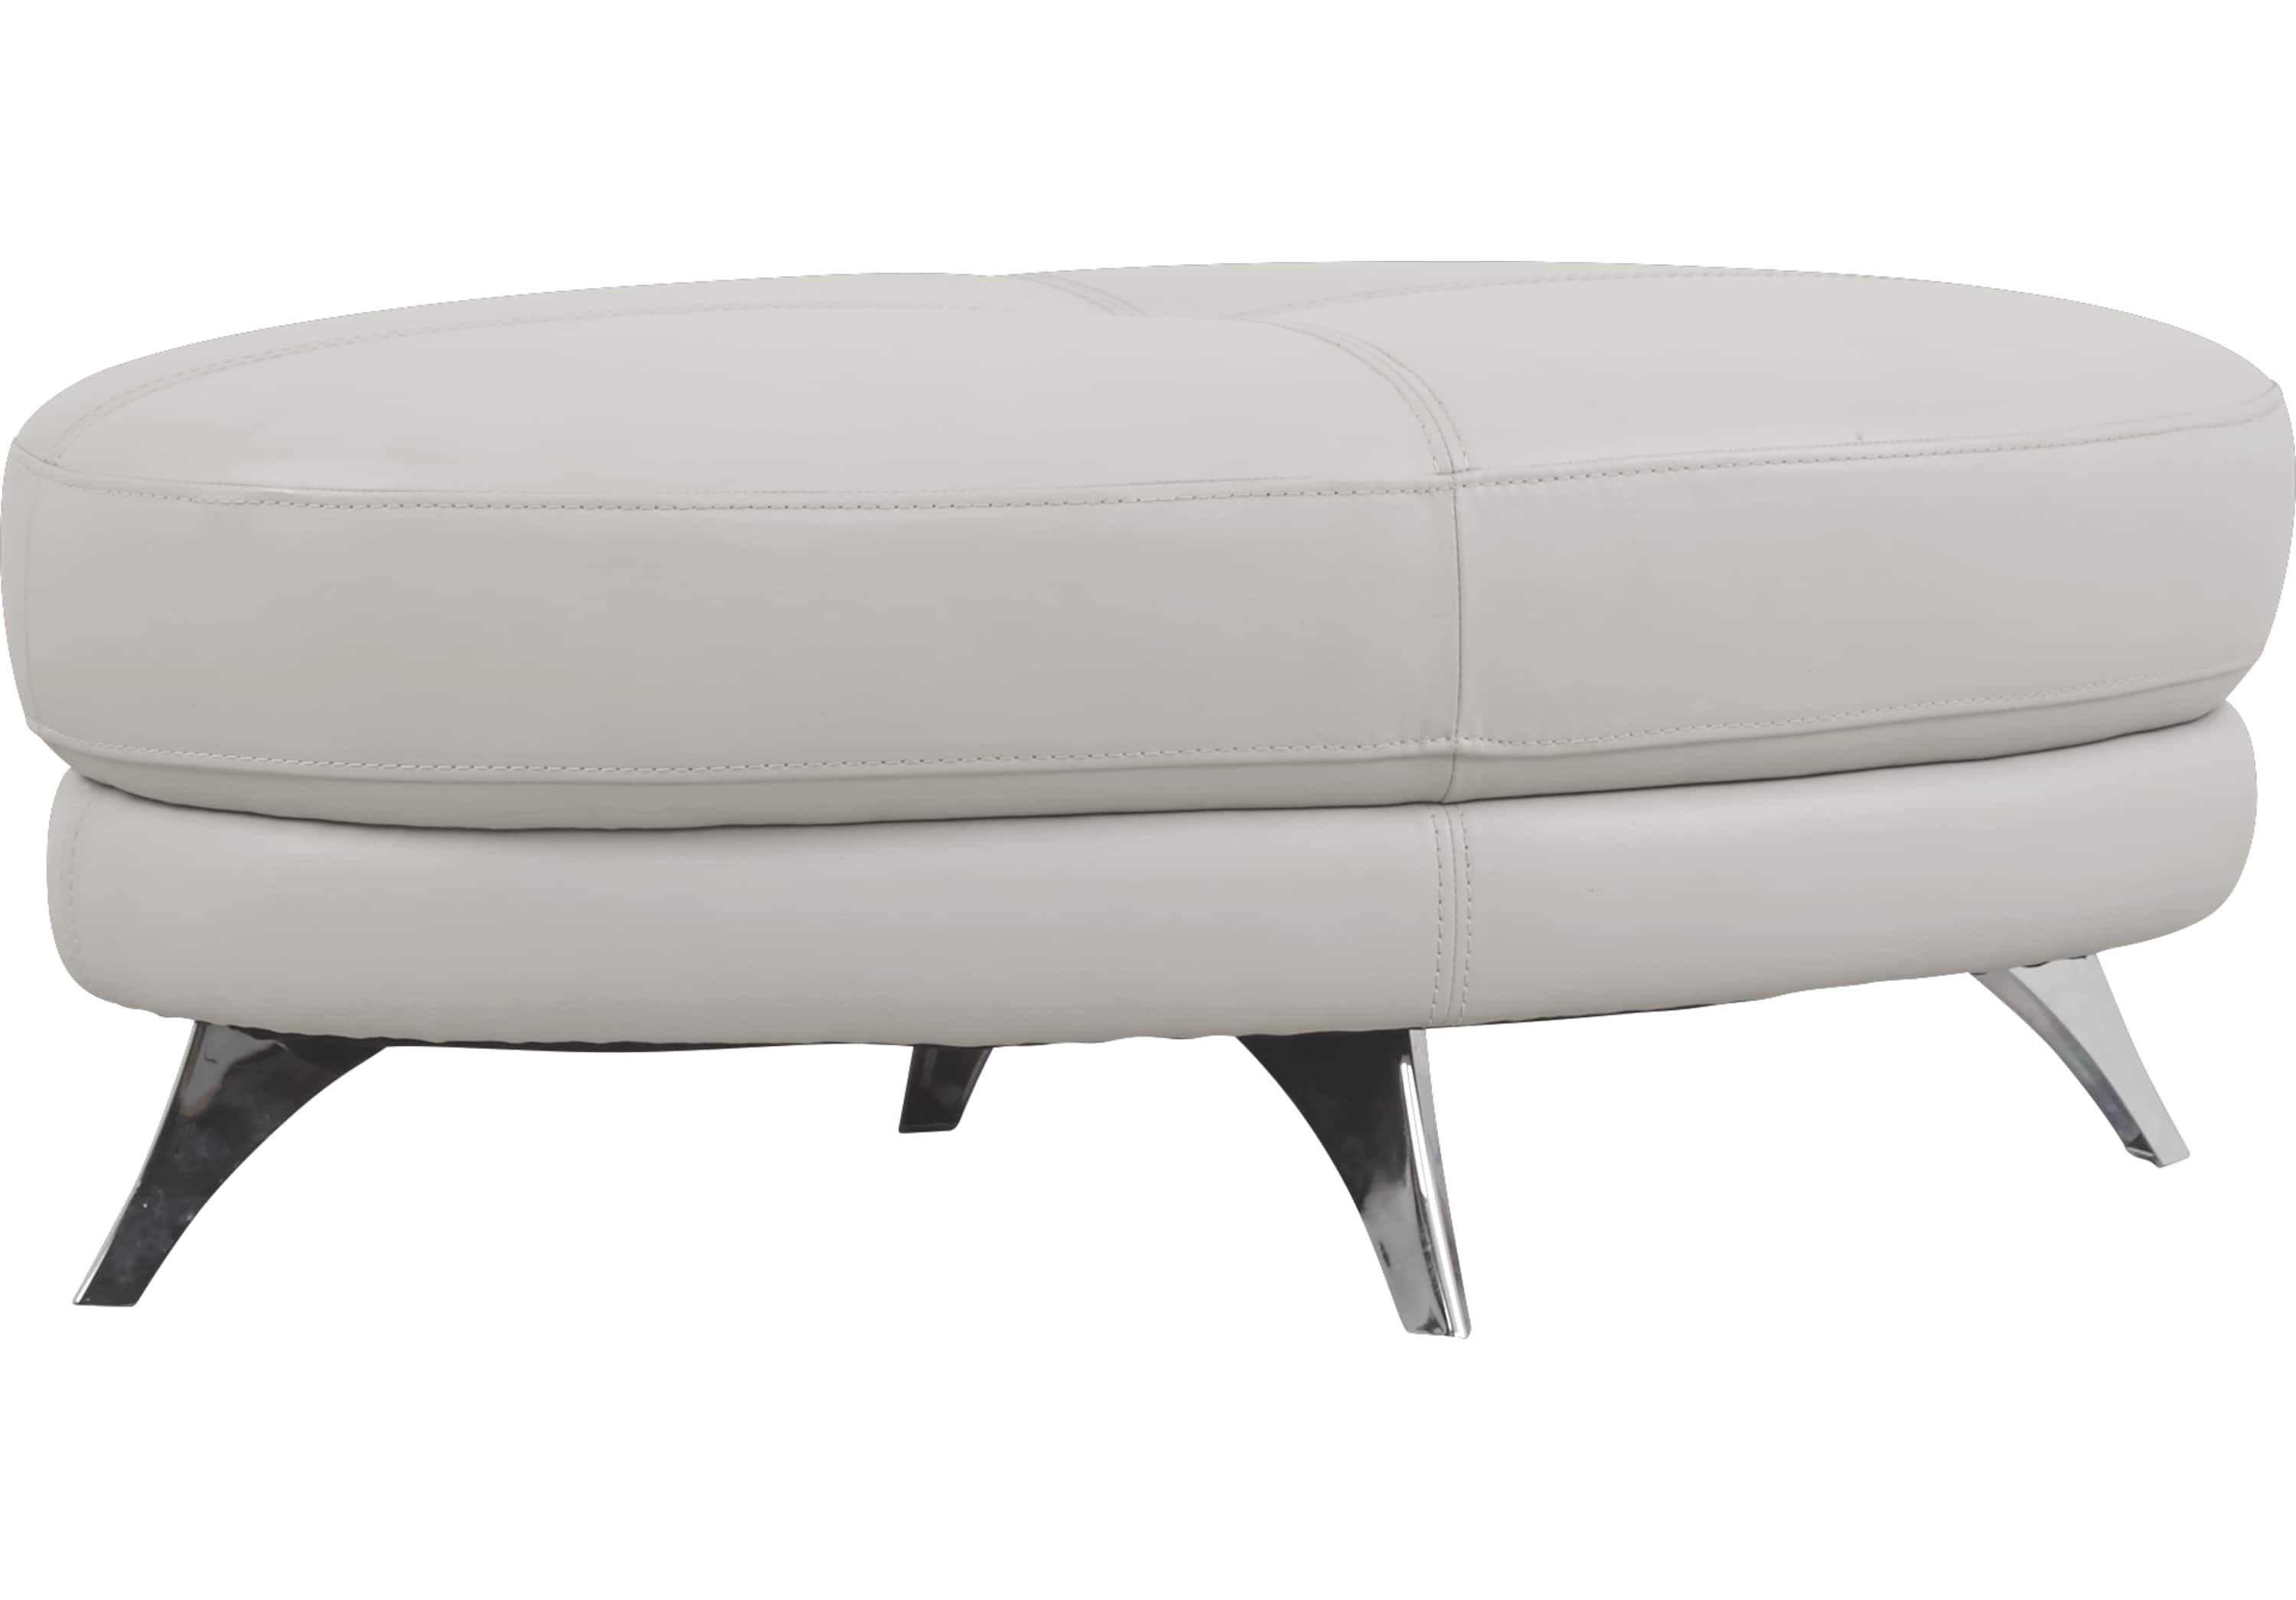 Modena Gray Leather Cocktail Ottoman Cocktail Ottomans Gray